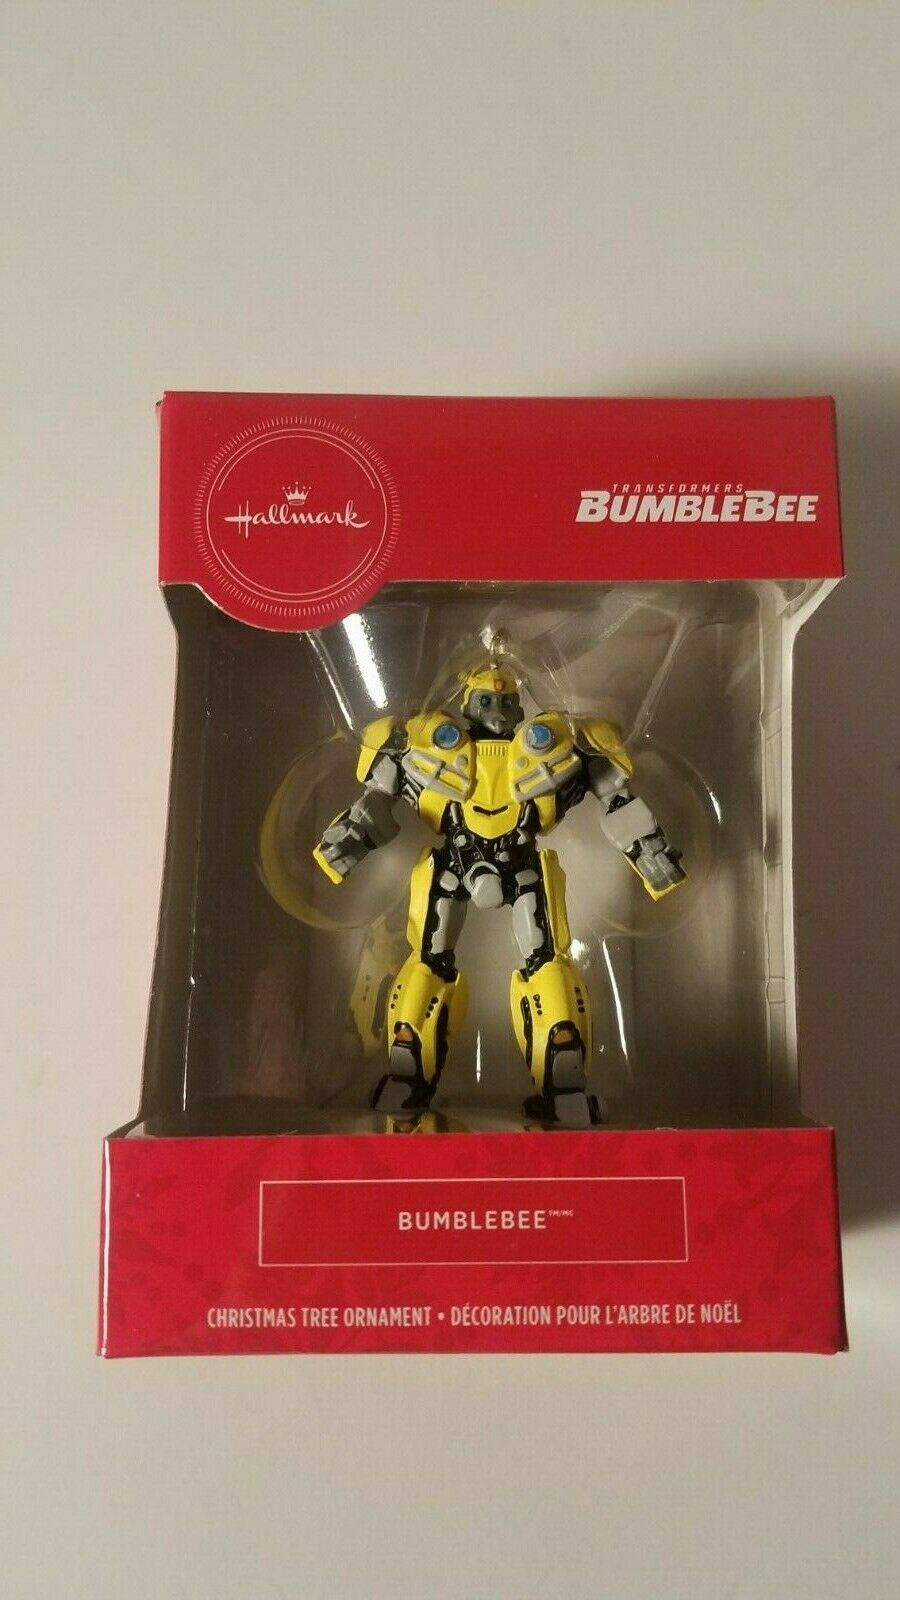 Primary image for hallmark ornament bumblebee transformers christmas tree decor new in box